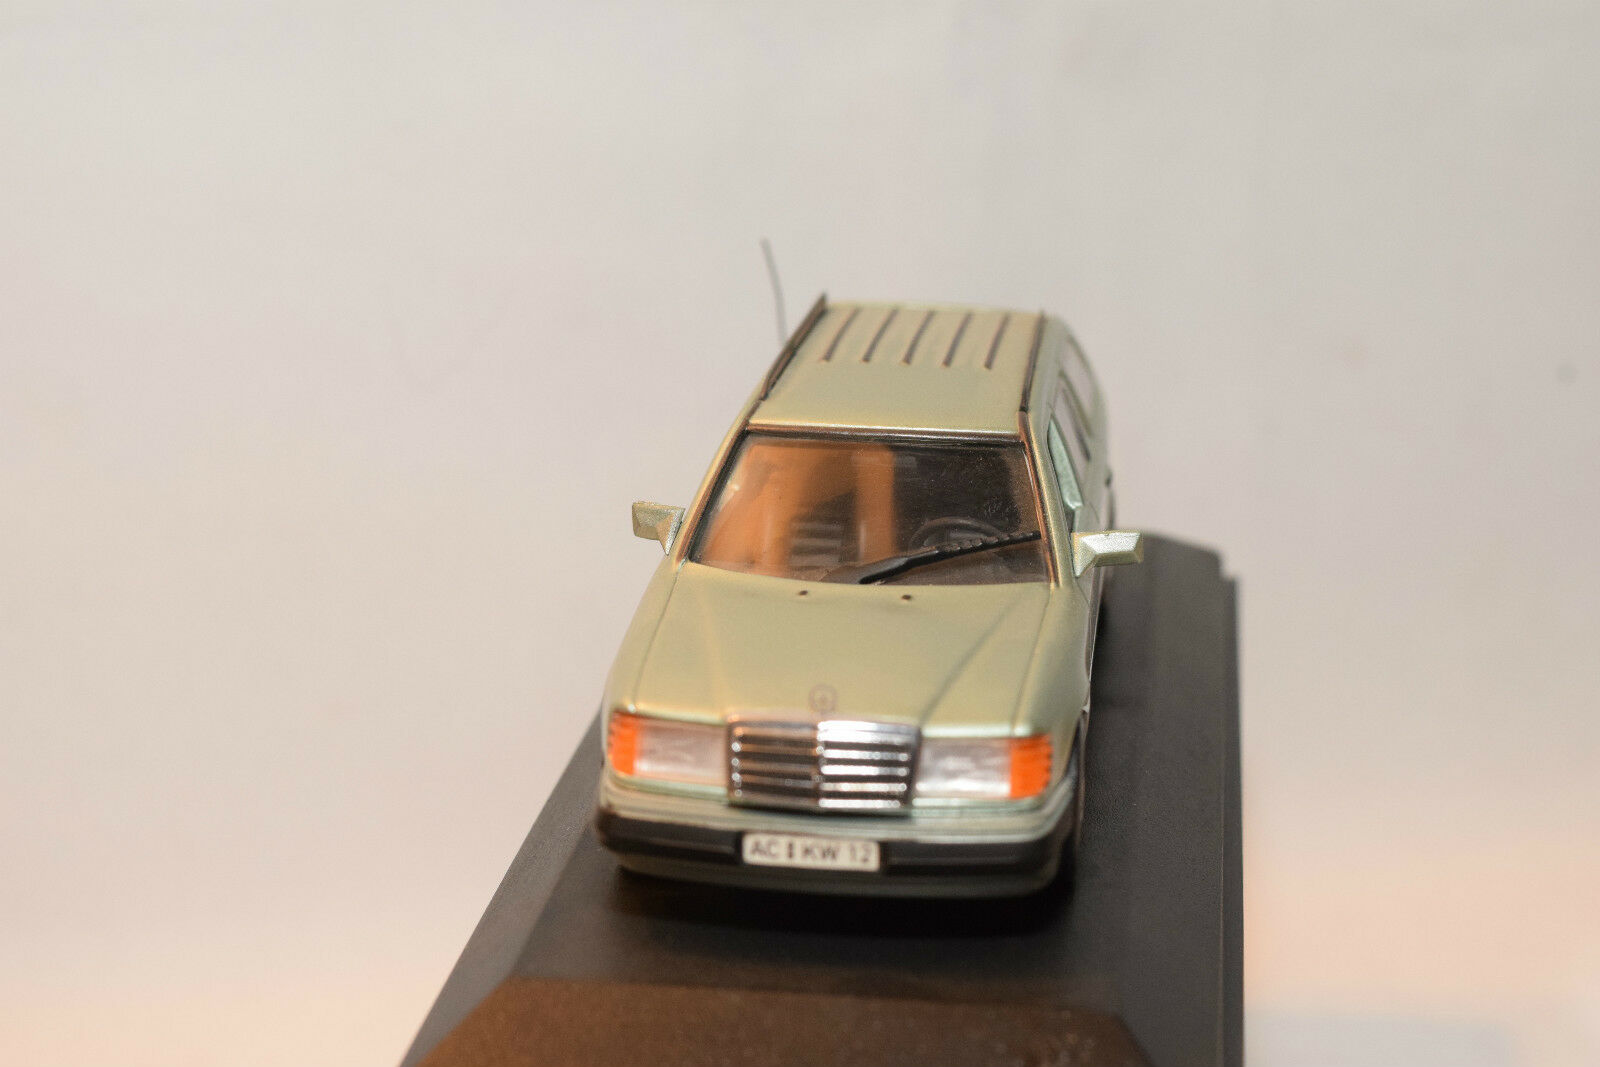 . MINICHAMPS 3302 MERCEDES BENZ 200TD 200 TD TD TD BREAK 1991 MINT BOXED RARE SELTEN bdca71